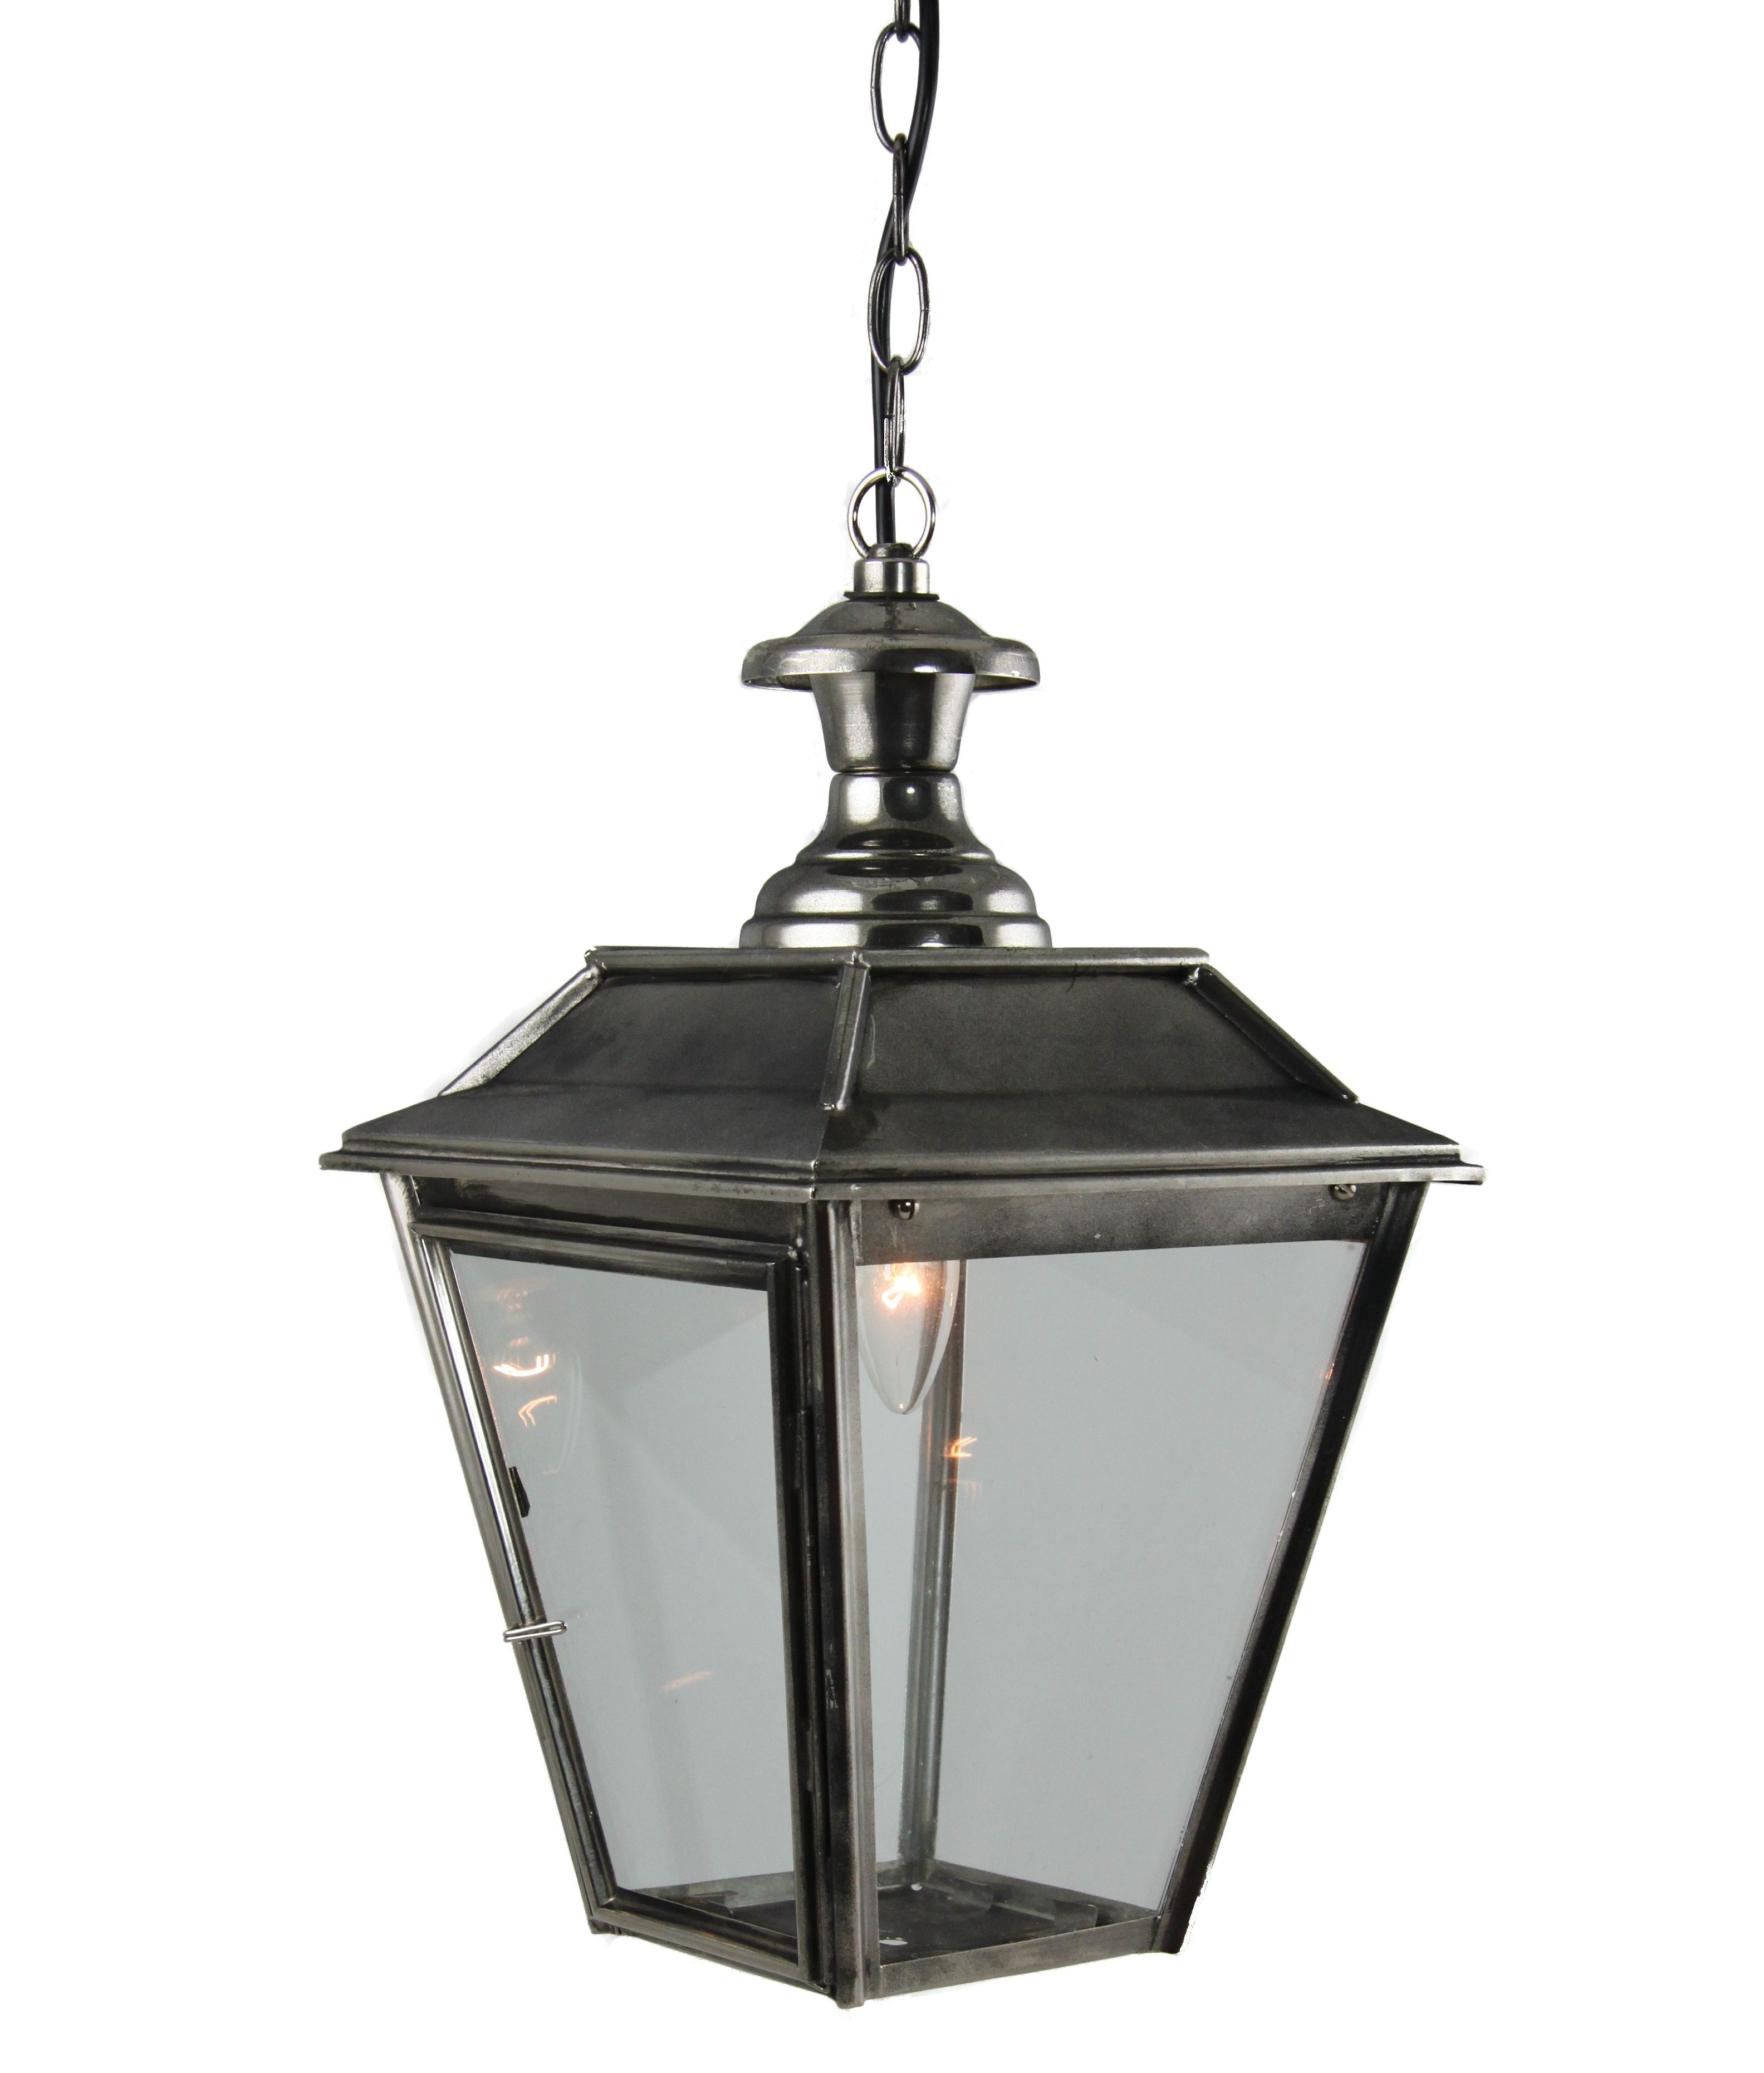 Victorian Style Lanterns And Chain Link Suspension